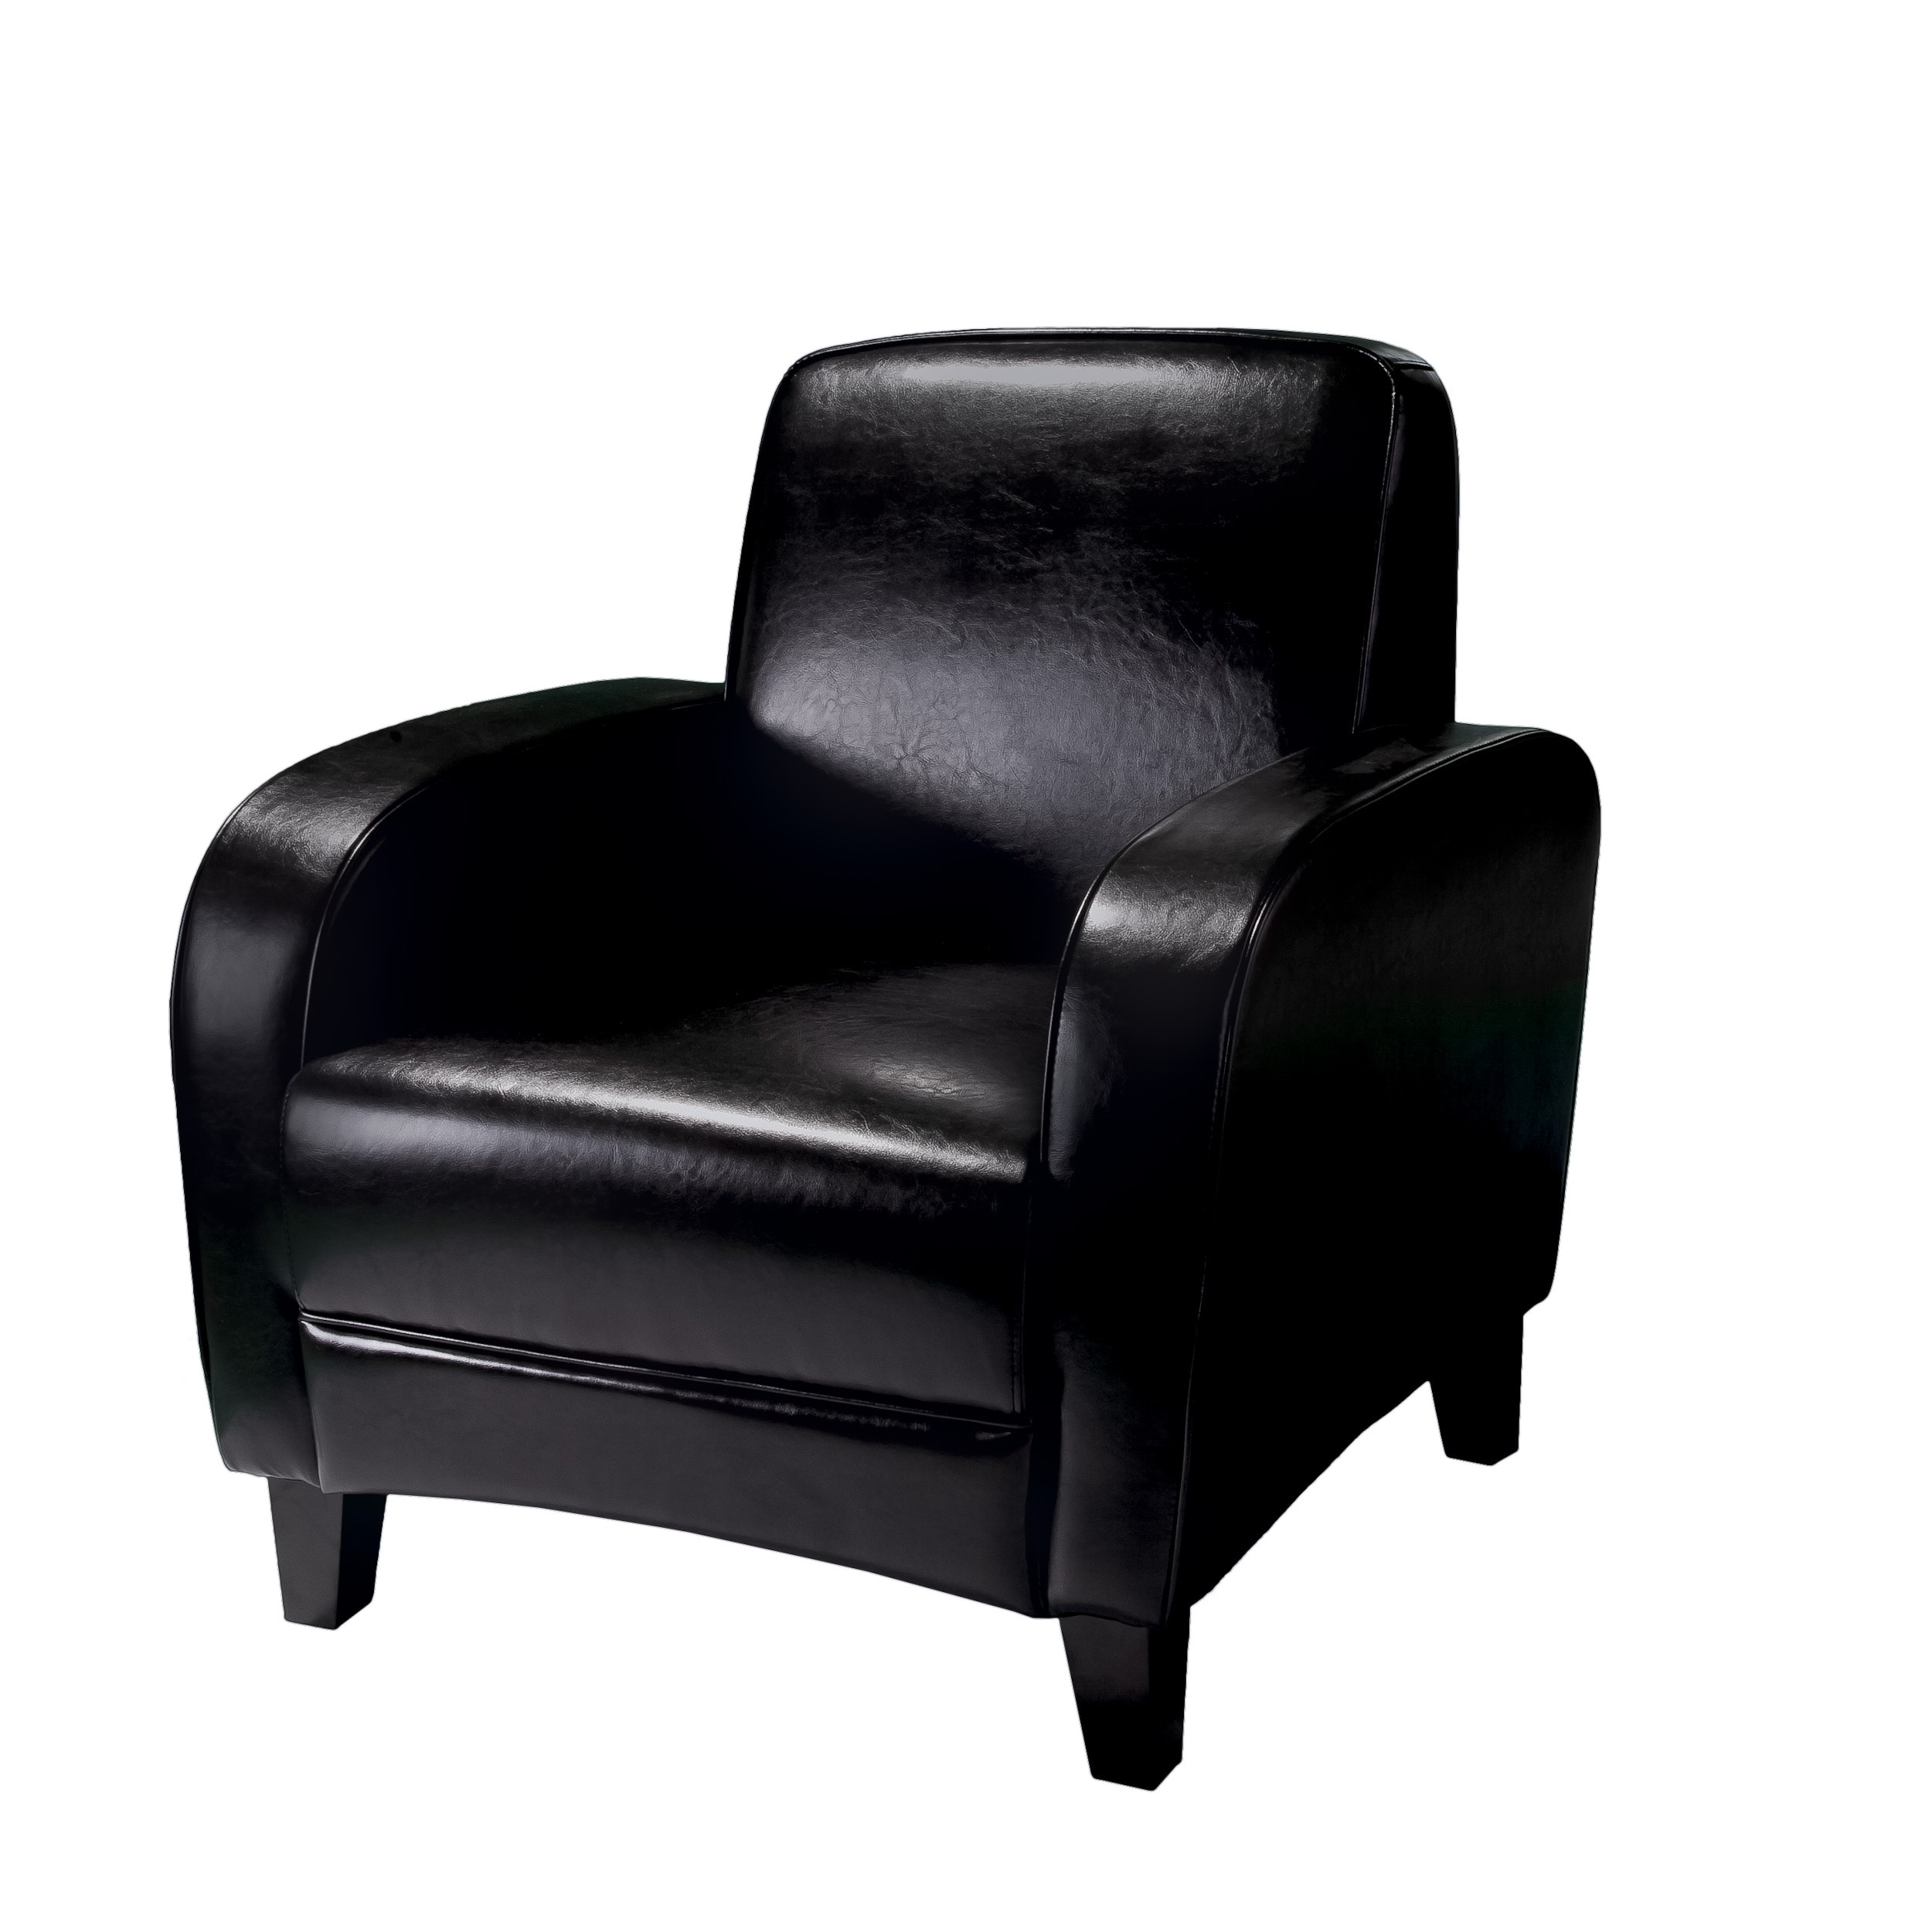 Christopher Knight Home Maurice Espresso Leather Club Chair